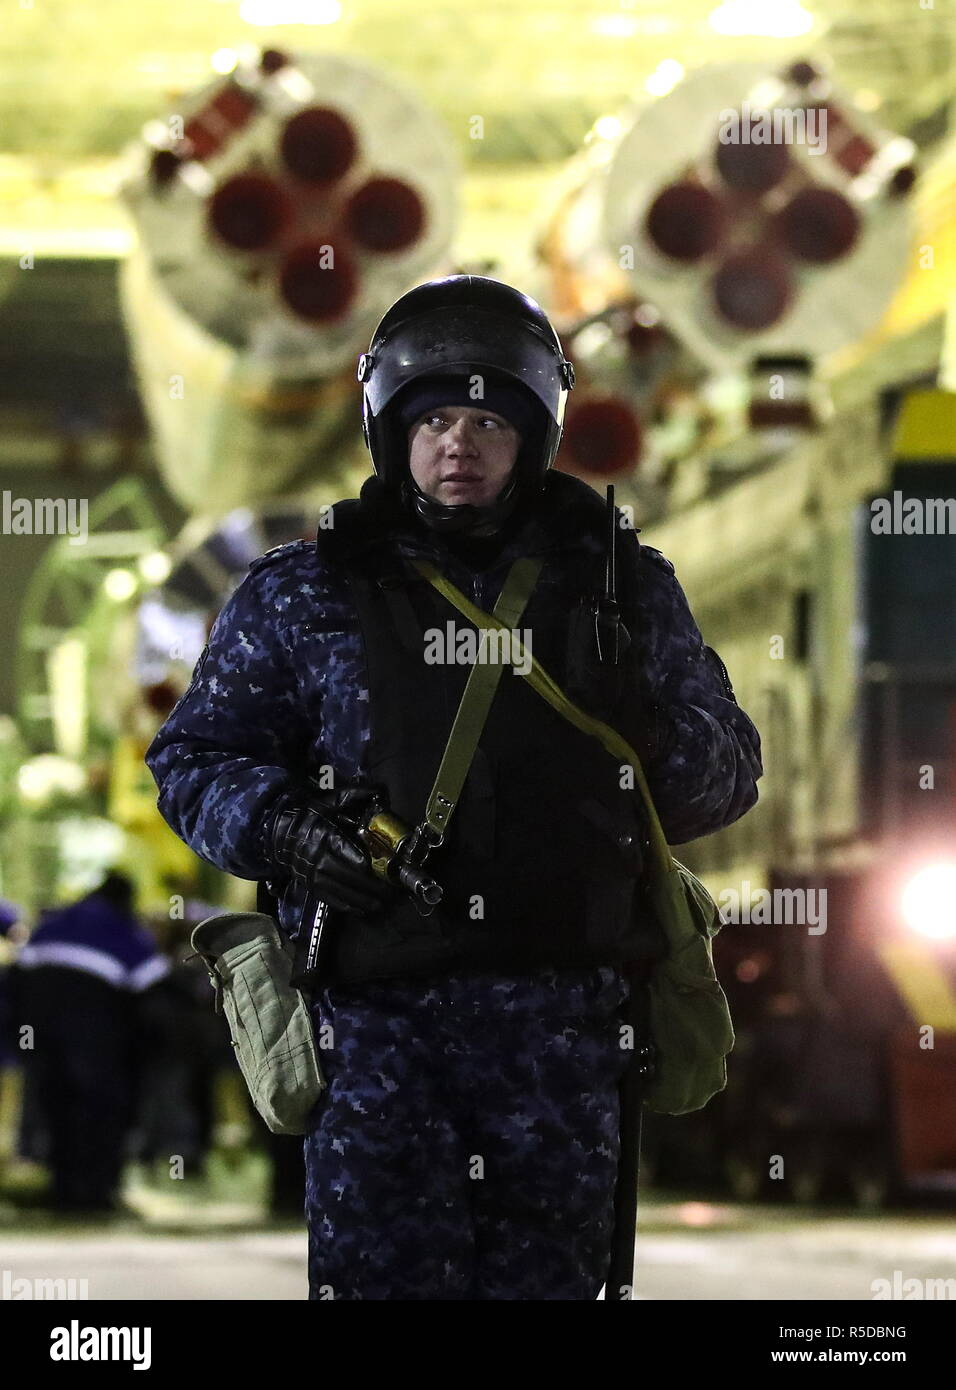 Kazakhstan. 01st Dec, 2018. KAZAKHSTAN - DECEMBER 1, 2018: An armed guard looks on as a Soyuz-FG rocket booster carrying the Soyuz MS-11 spacecraft is transported from an assembling facility to the launch pad at the Baikonur Cosmodrome. The launch of the Soyuz MS-11 spacecraft to the International Space Station (ISS) is scheduled for December 3, 2018 at 14:31 Moscow time. Valery Sharifulin/TASS Credit: ITAR-TASS News Agency/Alamy Live News - Stock Image